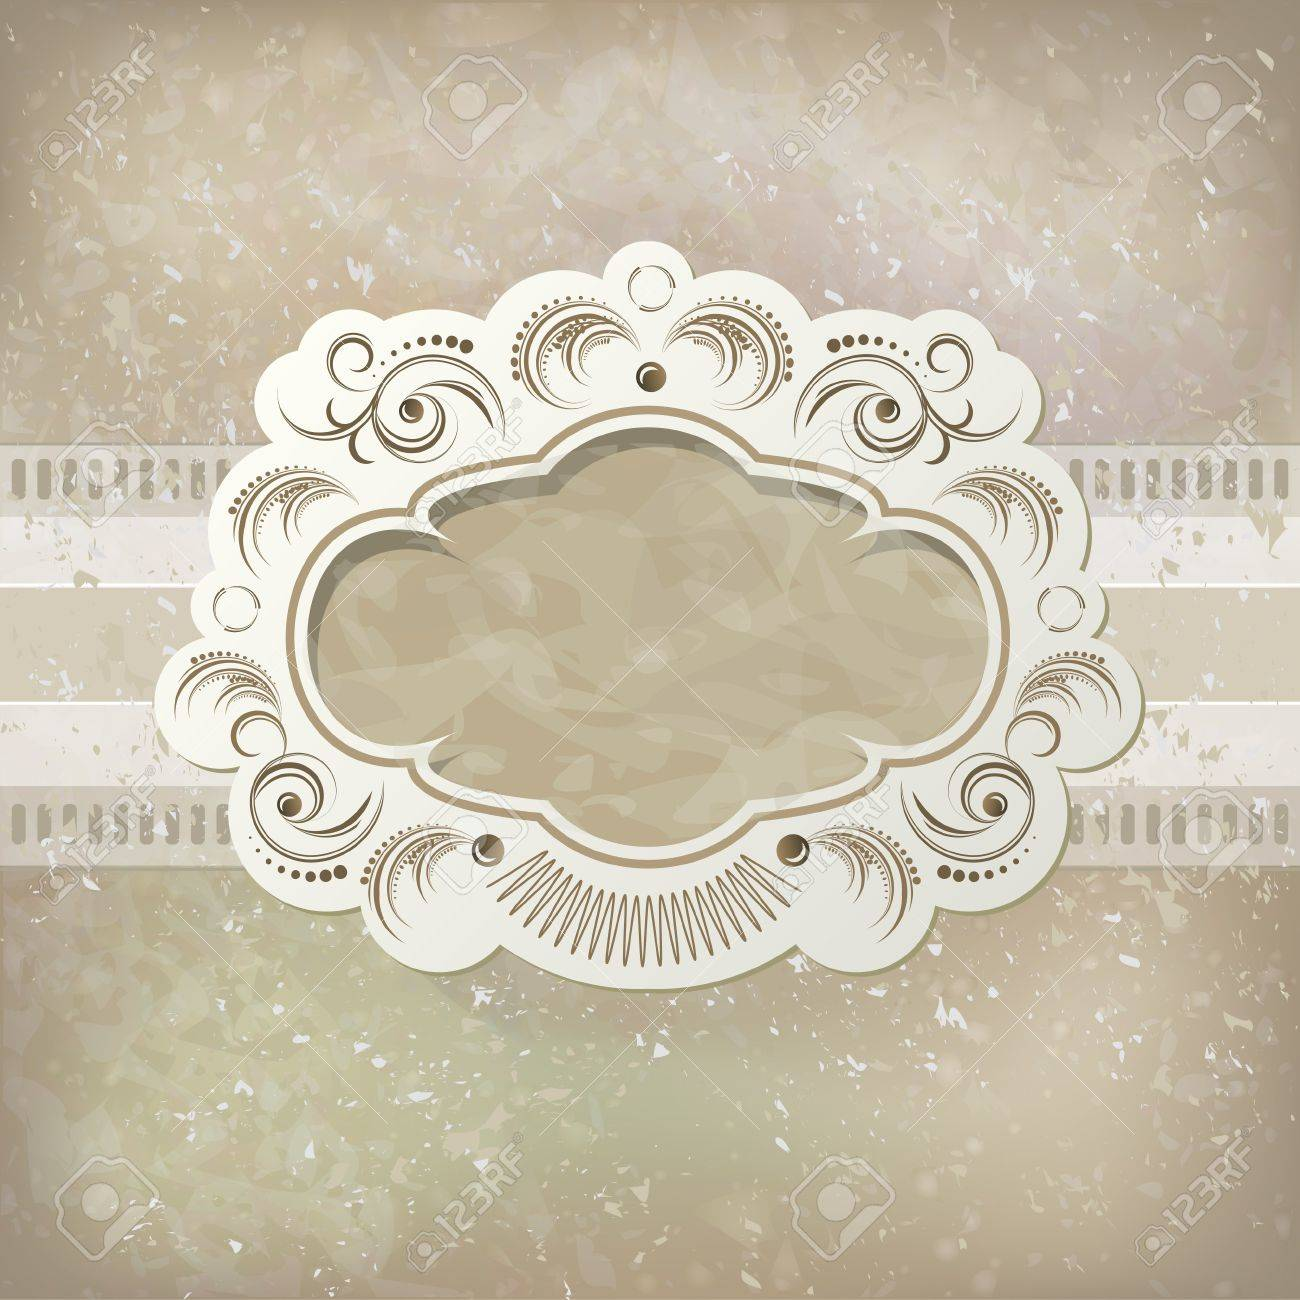 Vintage vector background and frame Stock Vector - 14239489